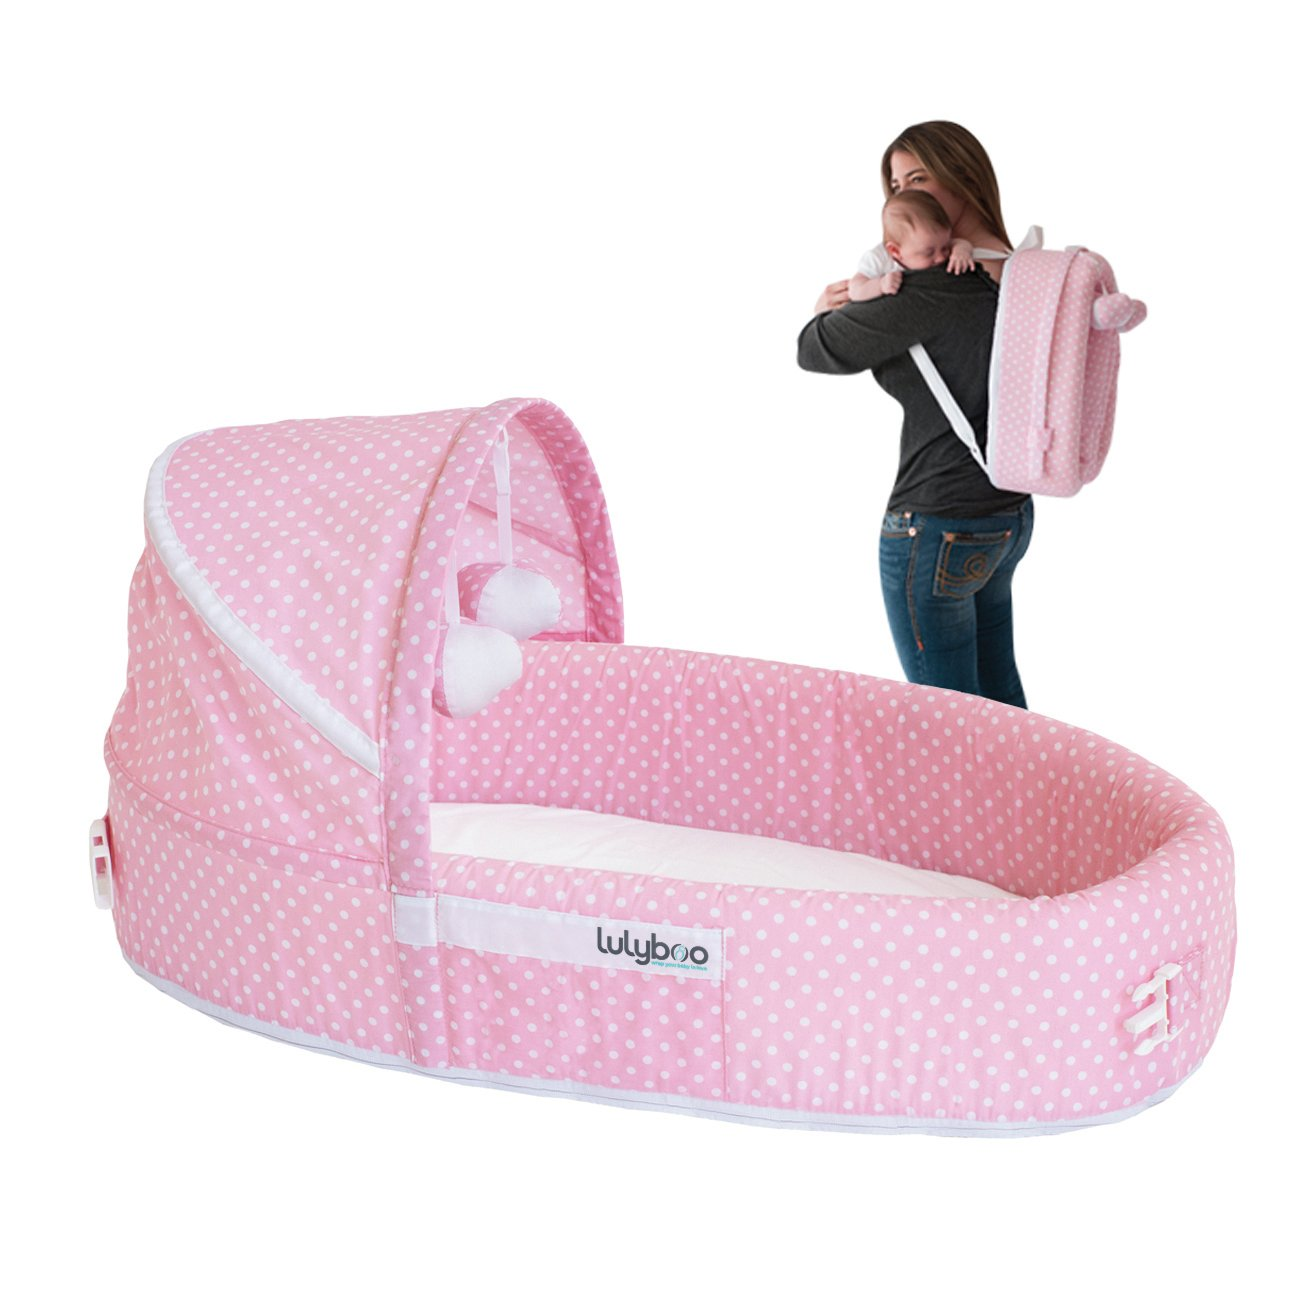 Infant LulyBoo Travel Bed